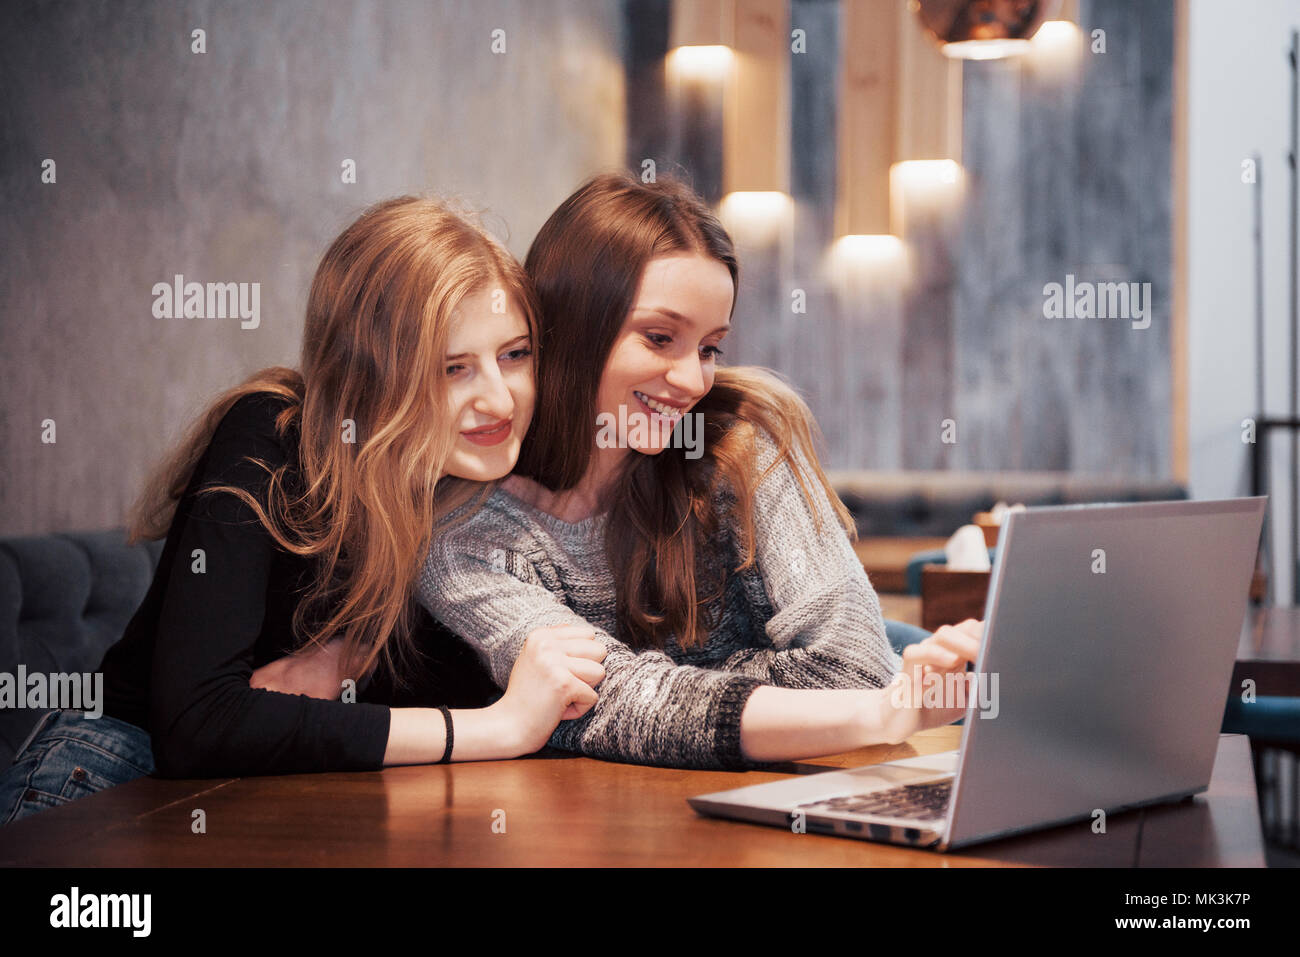 Two girls surfing the net, posting on social networks on a laptop computer and having fun - Stock Image